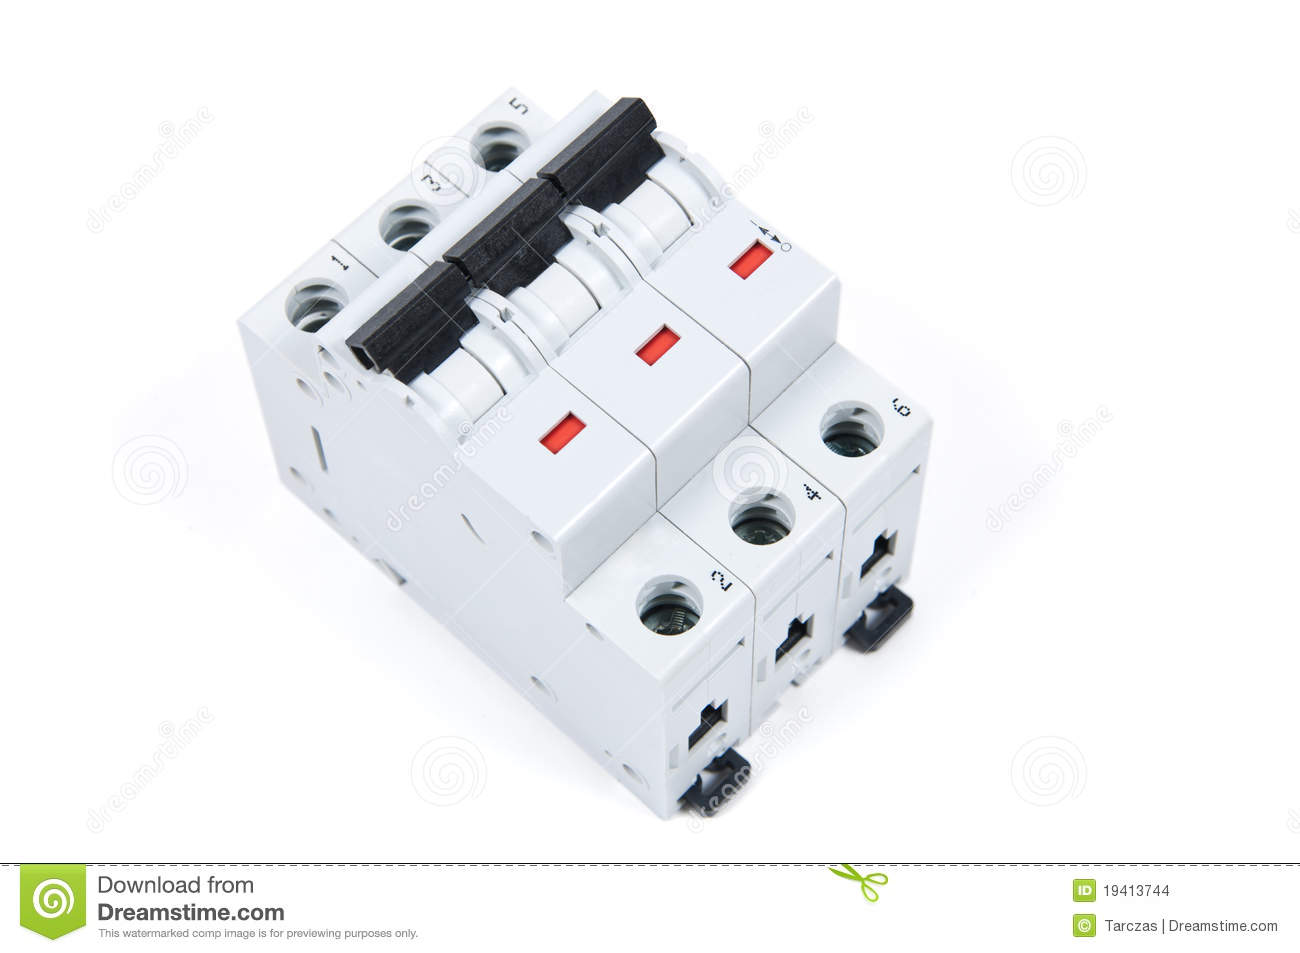 Three Phase Safety Switch In OFF Position Stock Photo - Image of ...